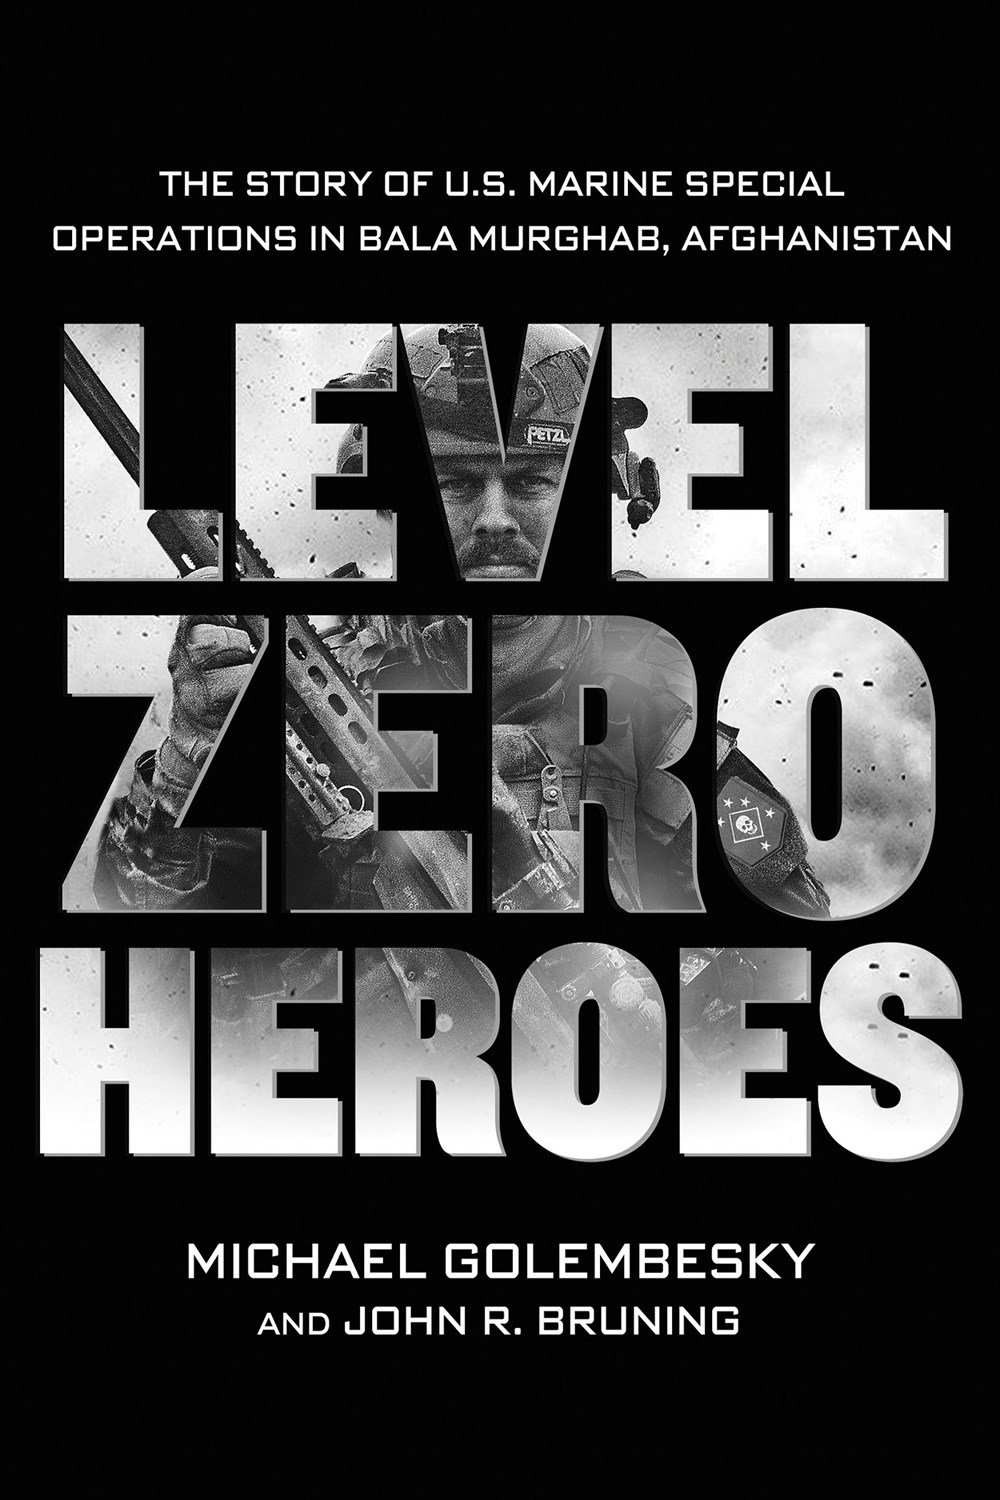 Level Zero Heroes: The Story of U.S. Marine Special Operations in Bala Murghab, Afghanistan PDF